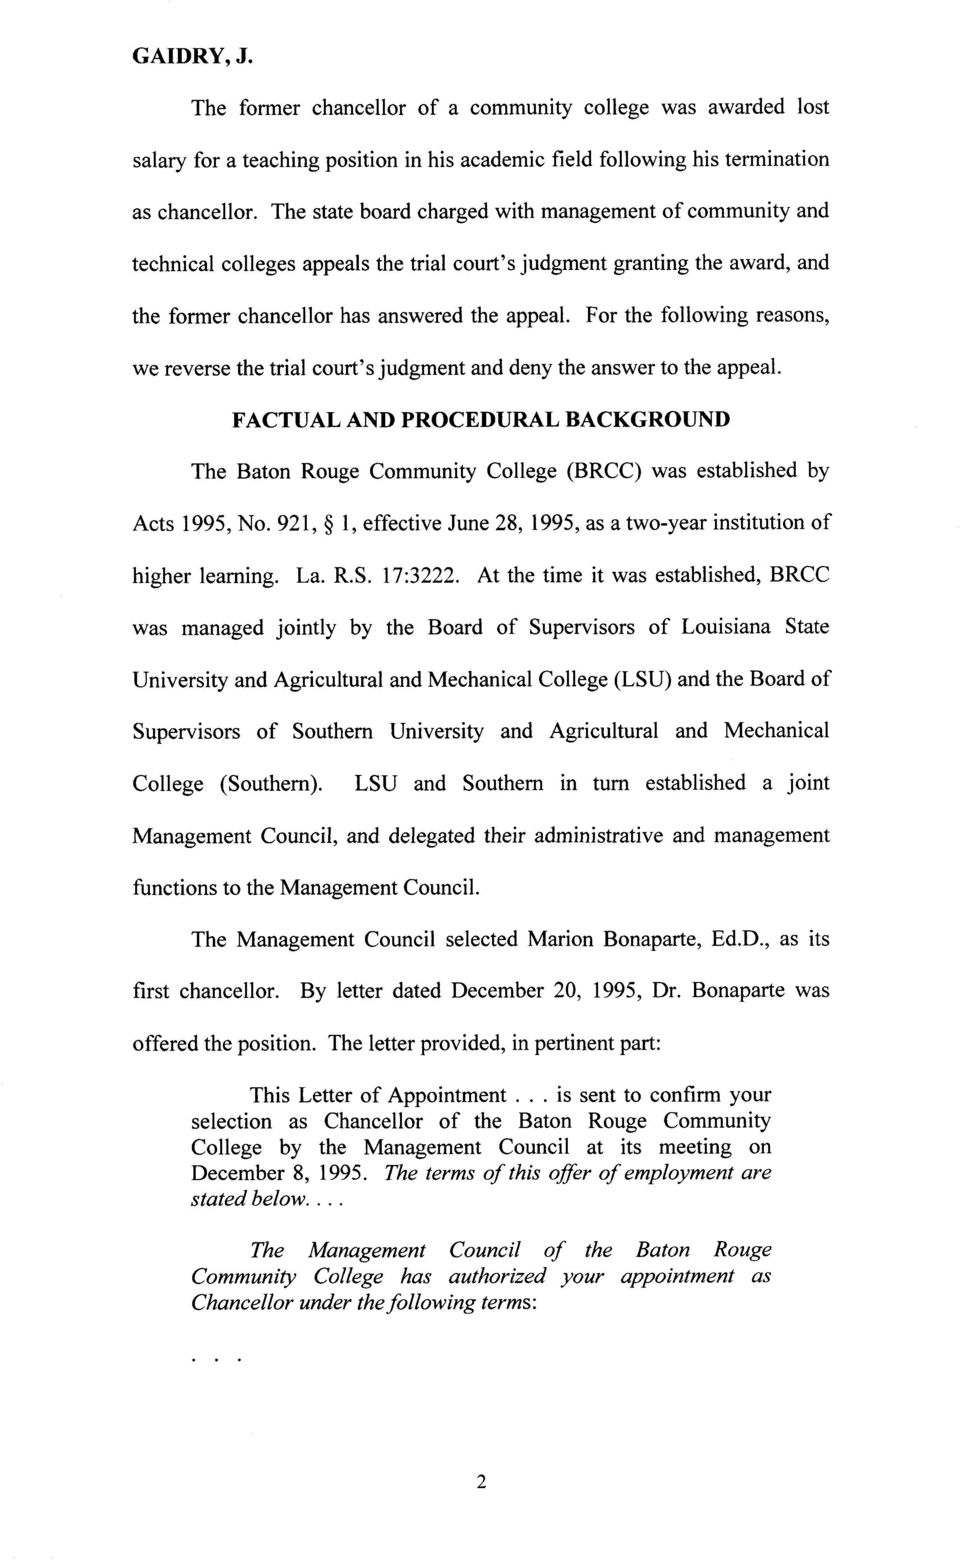 court s judgment and deny the answer to the appeal FACTUAL AND PROCEDURAL BACKGROUND The Baton Rouge Community College BRCC was established by Acts 1995 No 921 S 1 effective June 28 1995 as a two